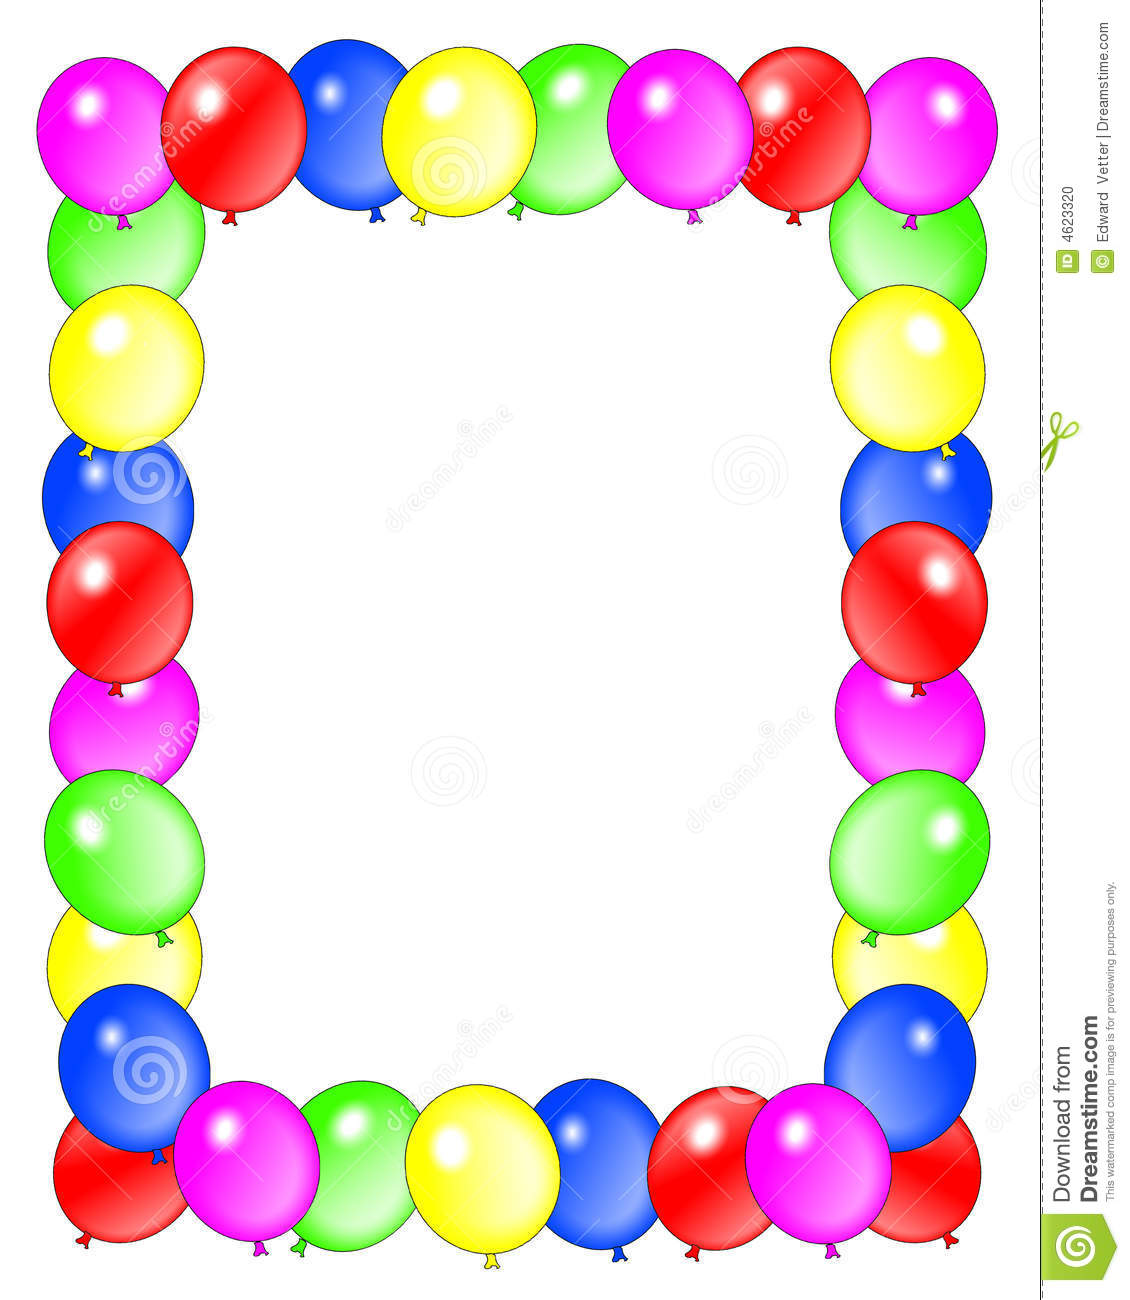 Birthday Balloons Border Frame Stock Illustration - Illustration of ...